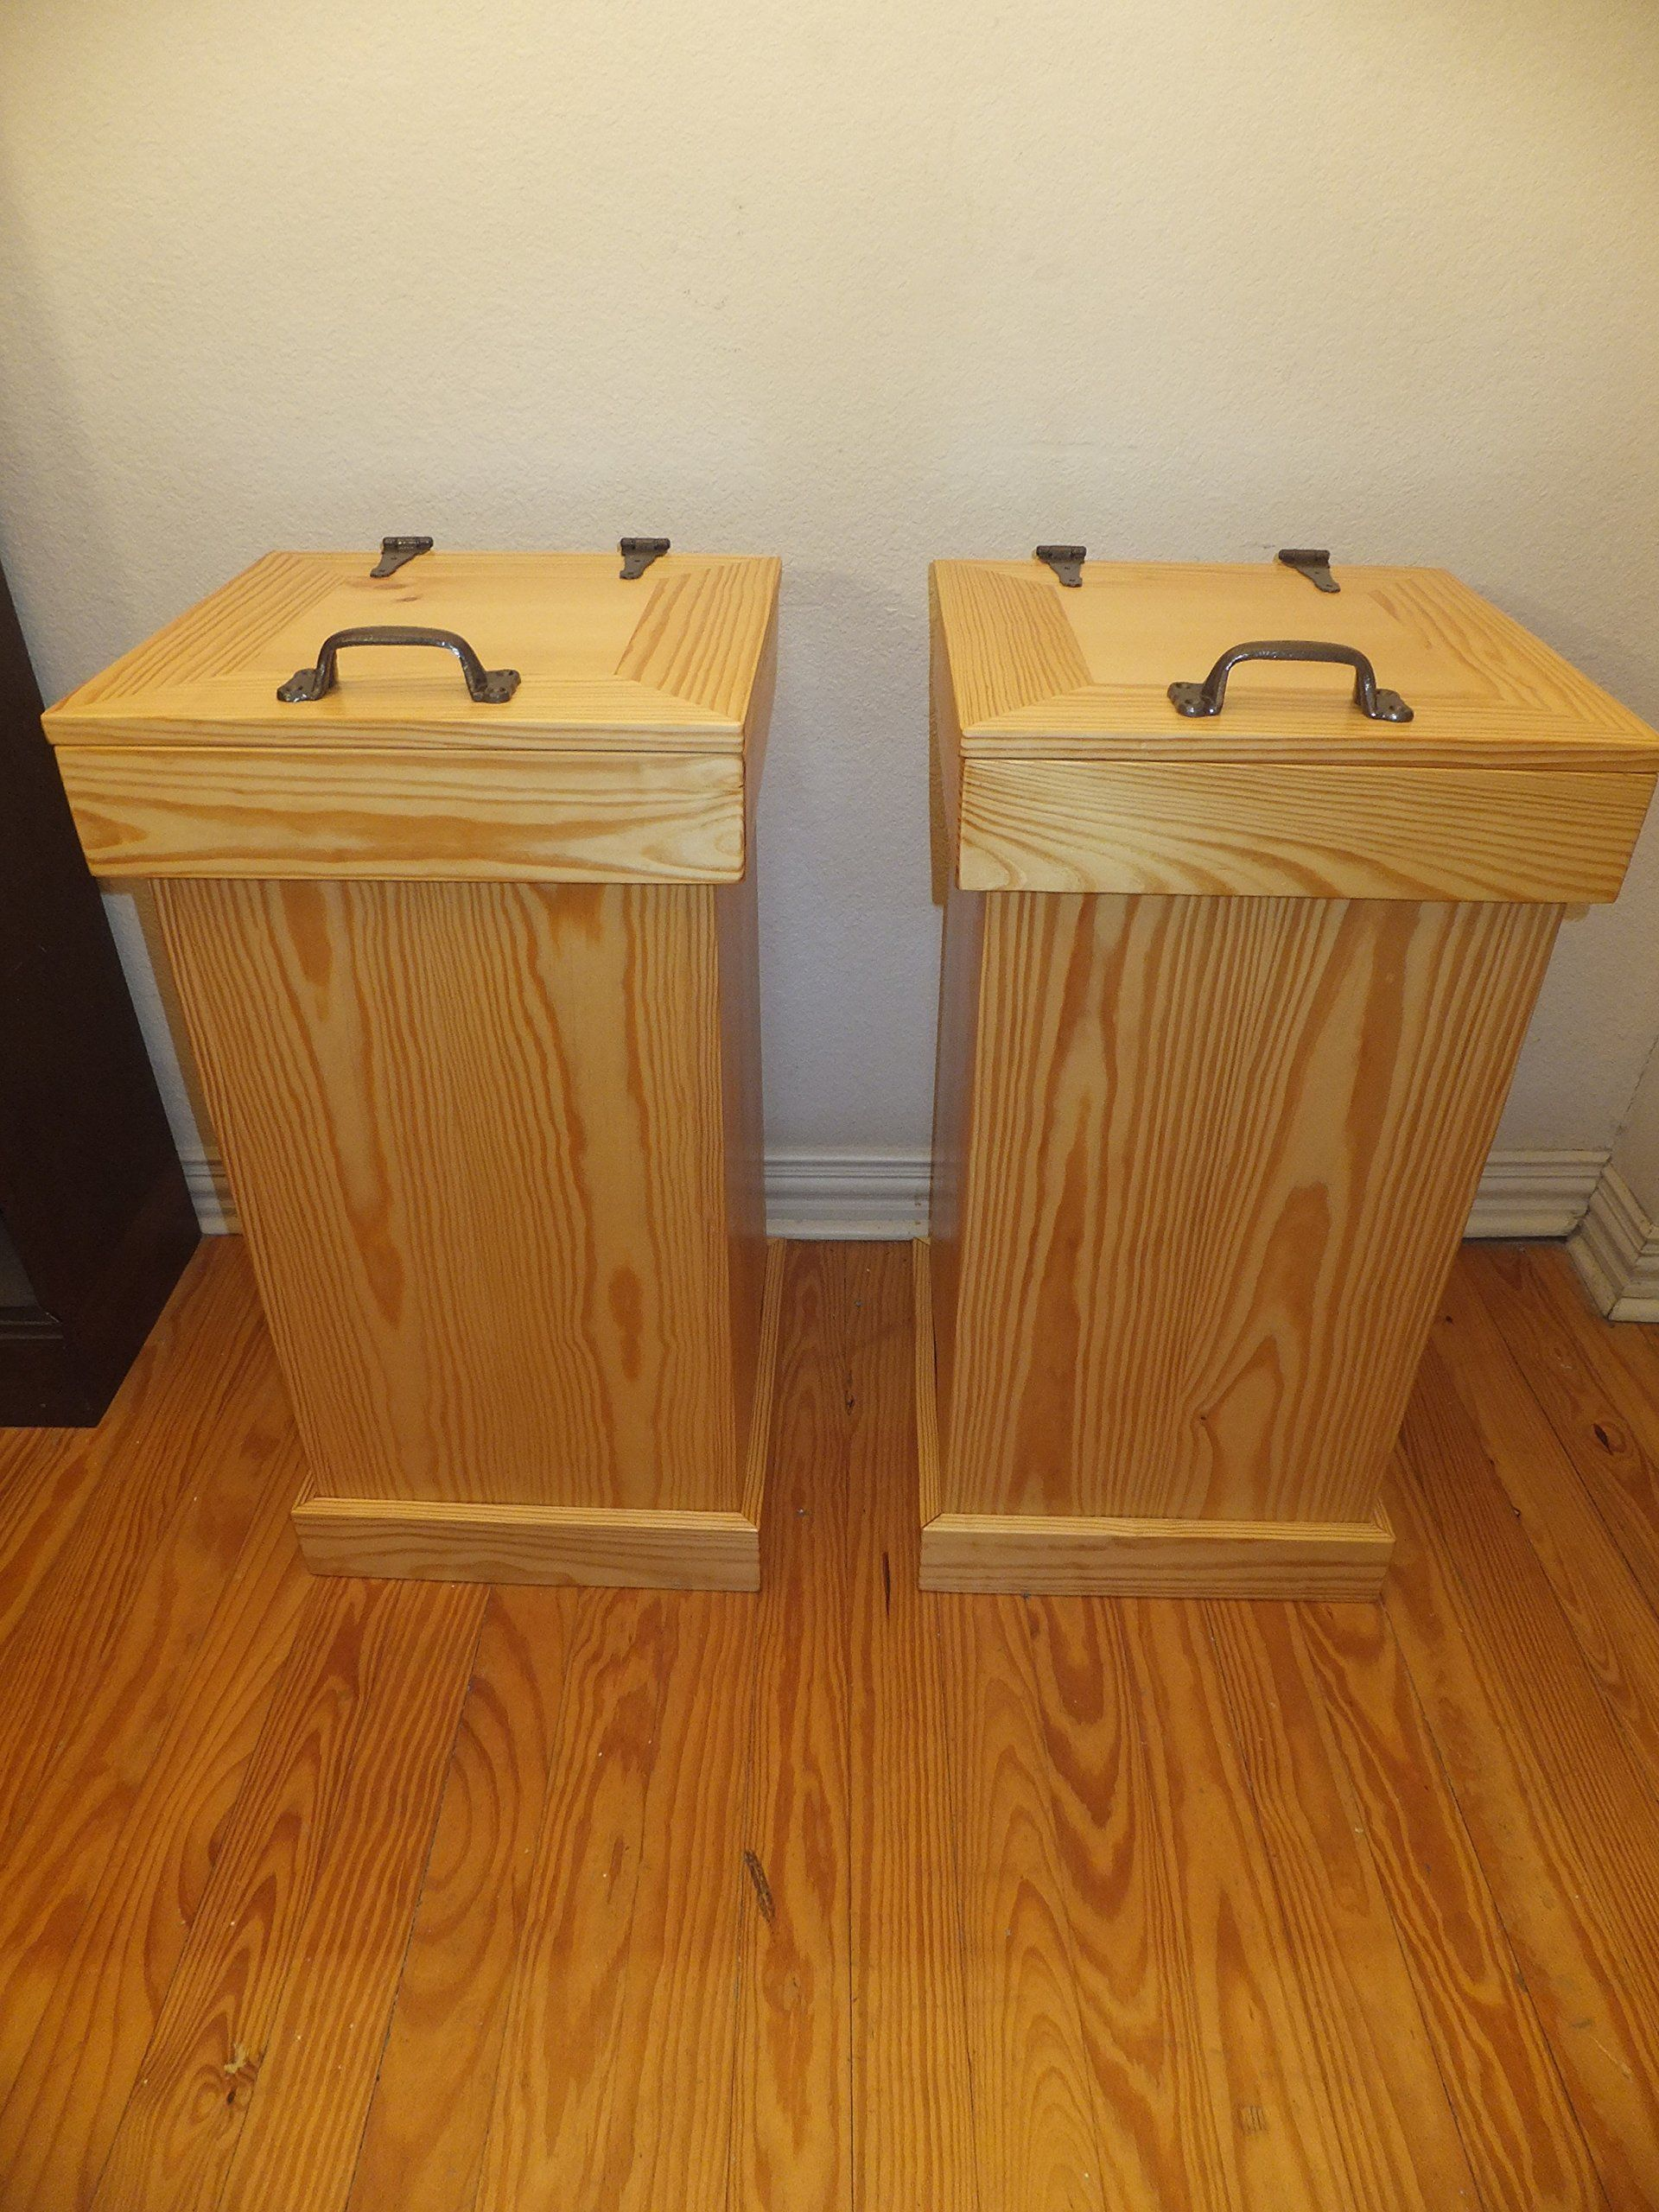 Rustic Wood Trash Can With NO Decor. Handcrafted With Cabinet Grade Pine.  NO DECOR